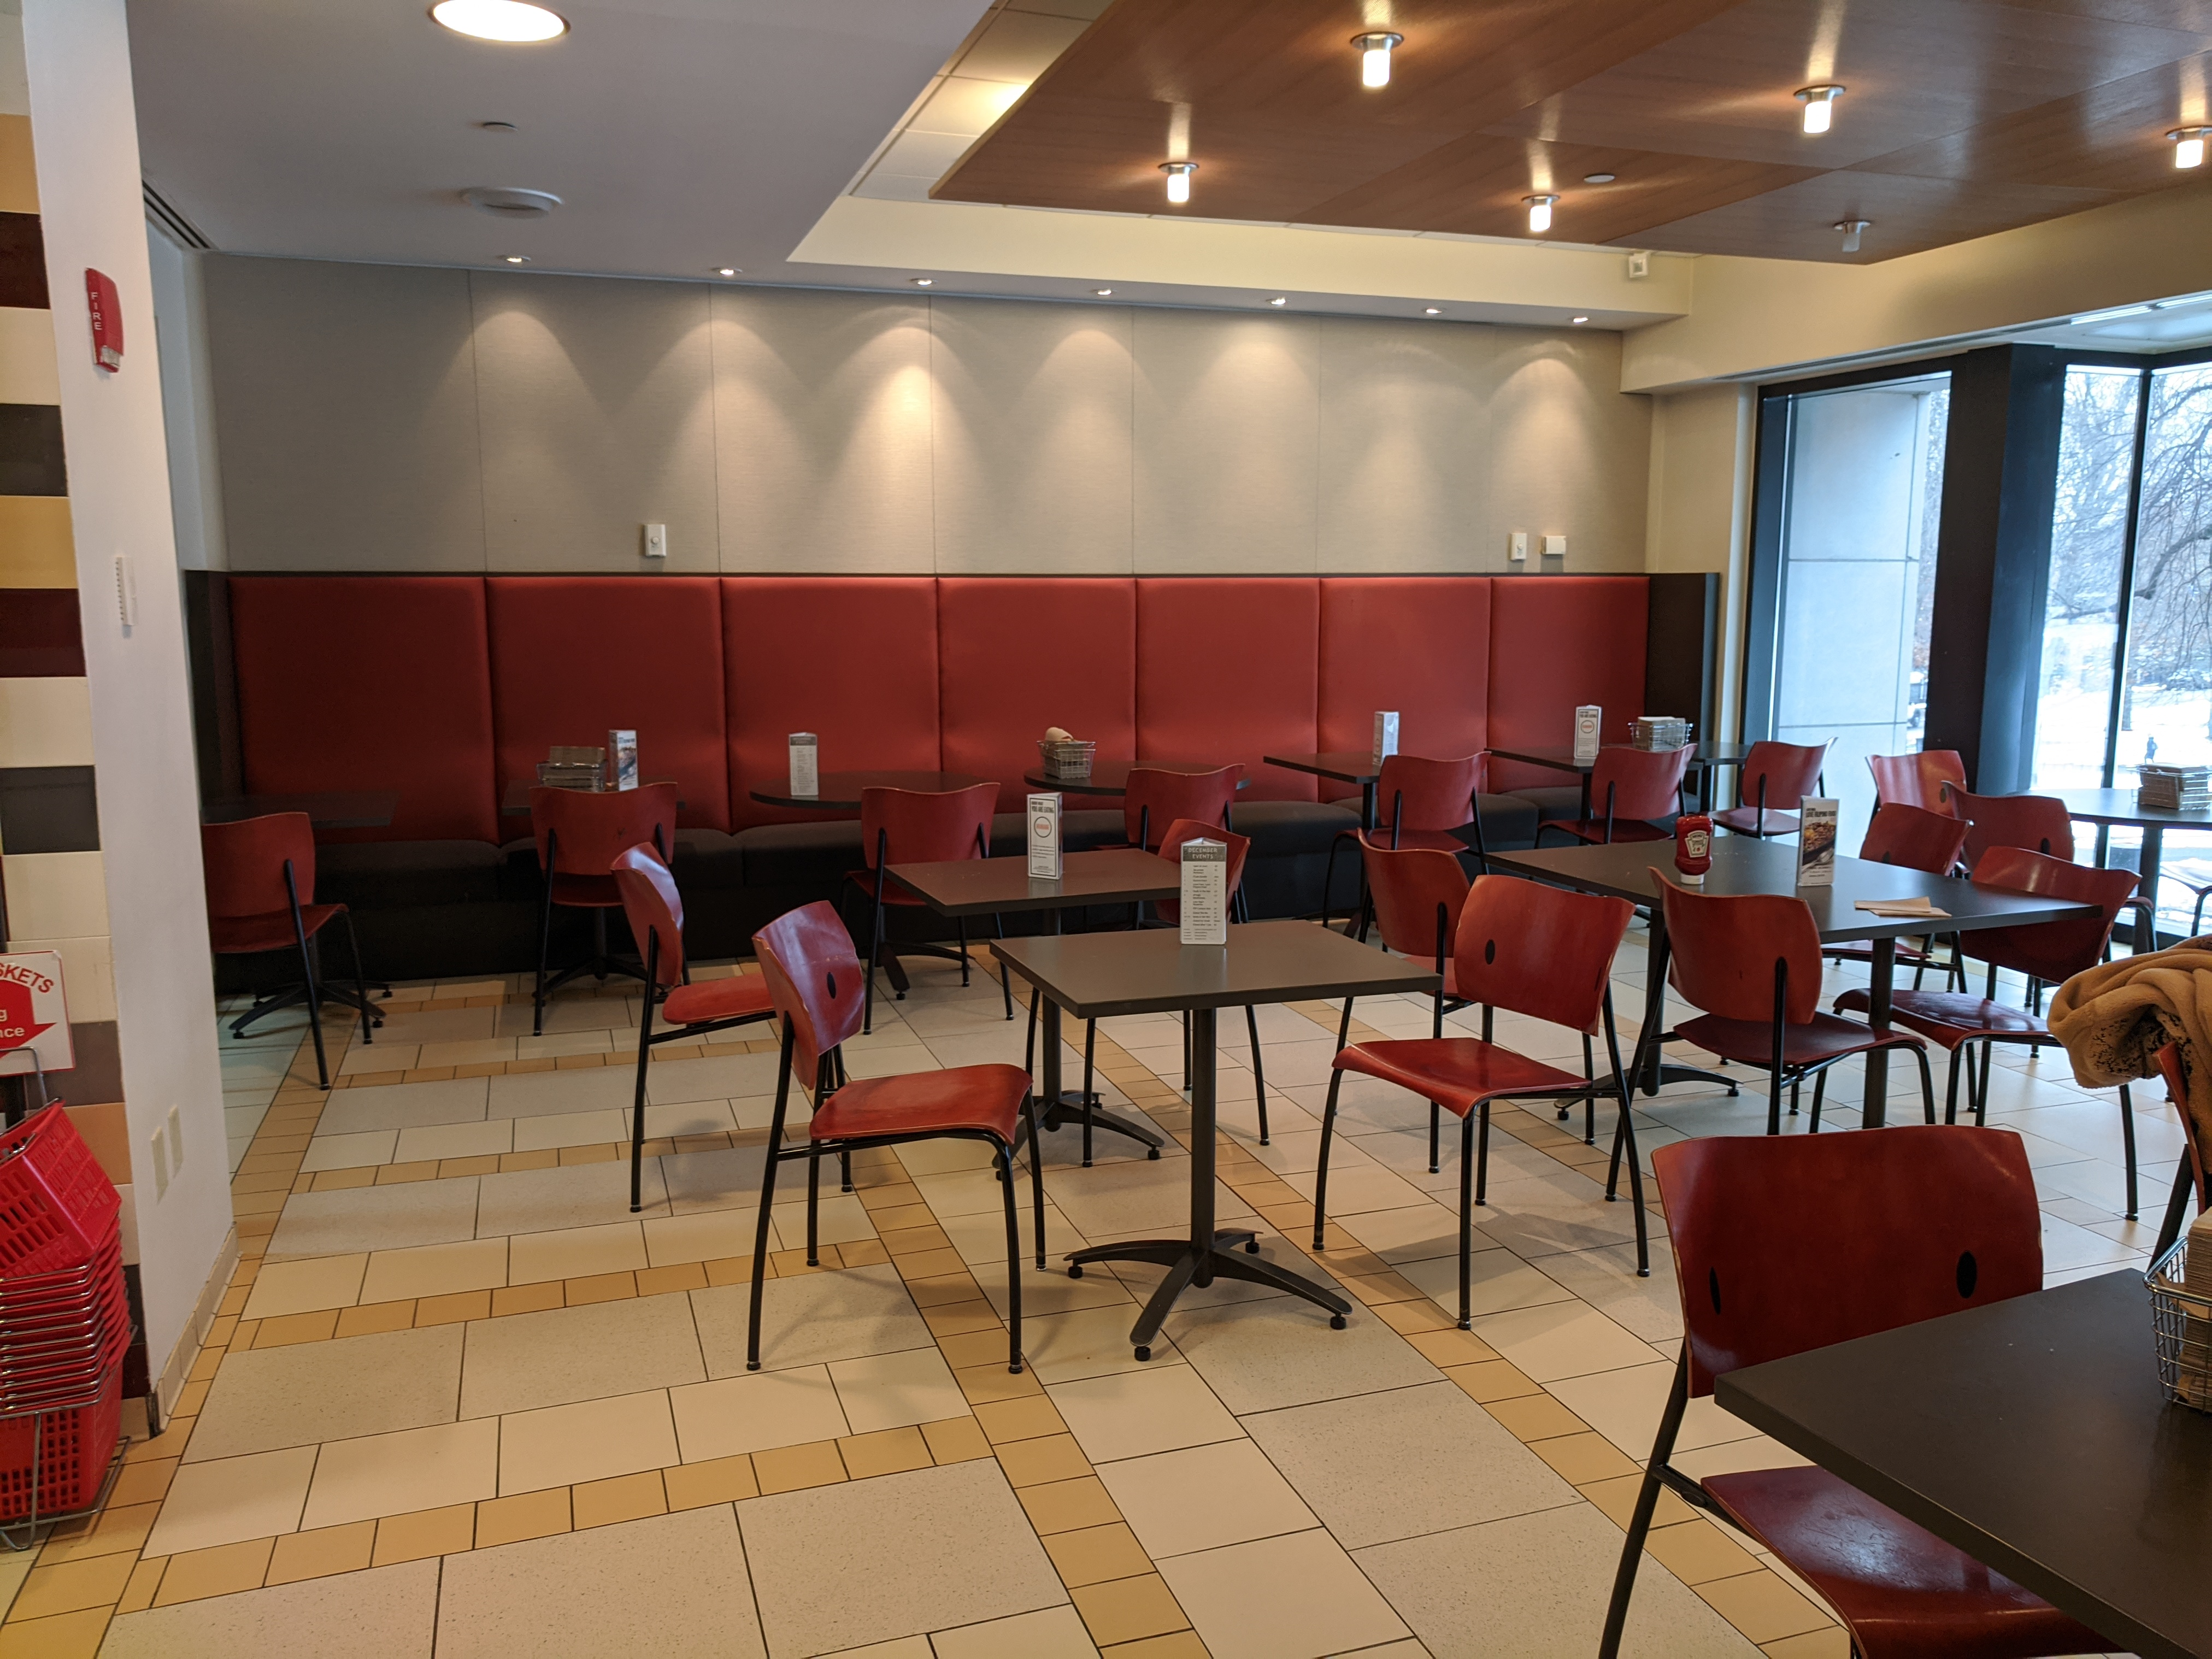 cafe with red banquette, about 12 red chairs, and 4 small tables